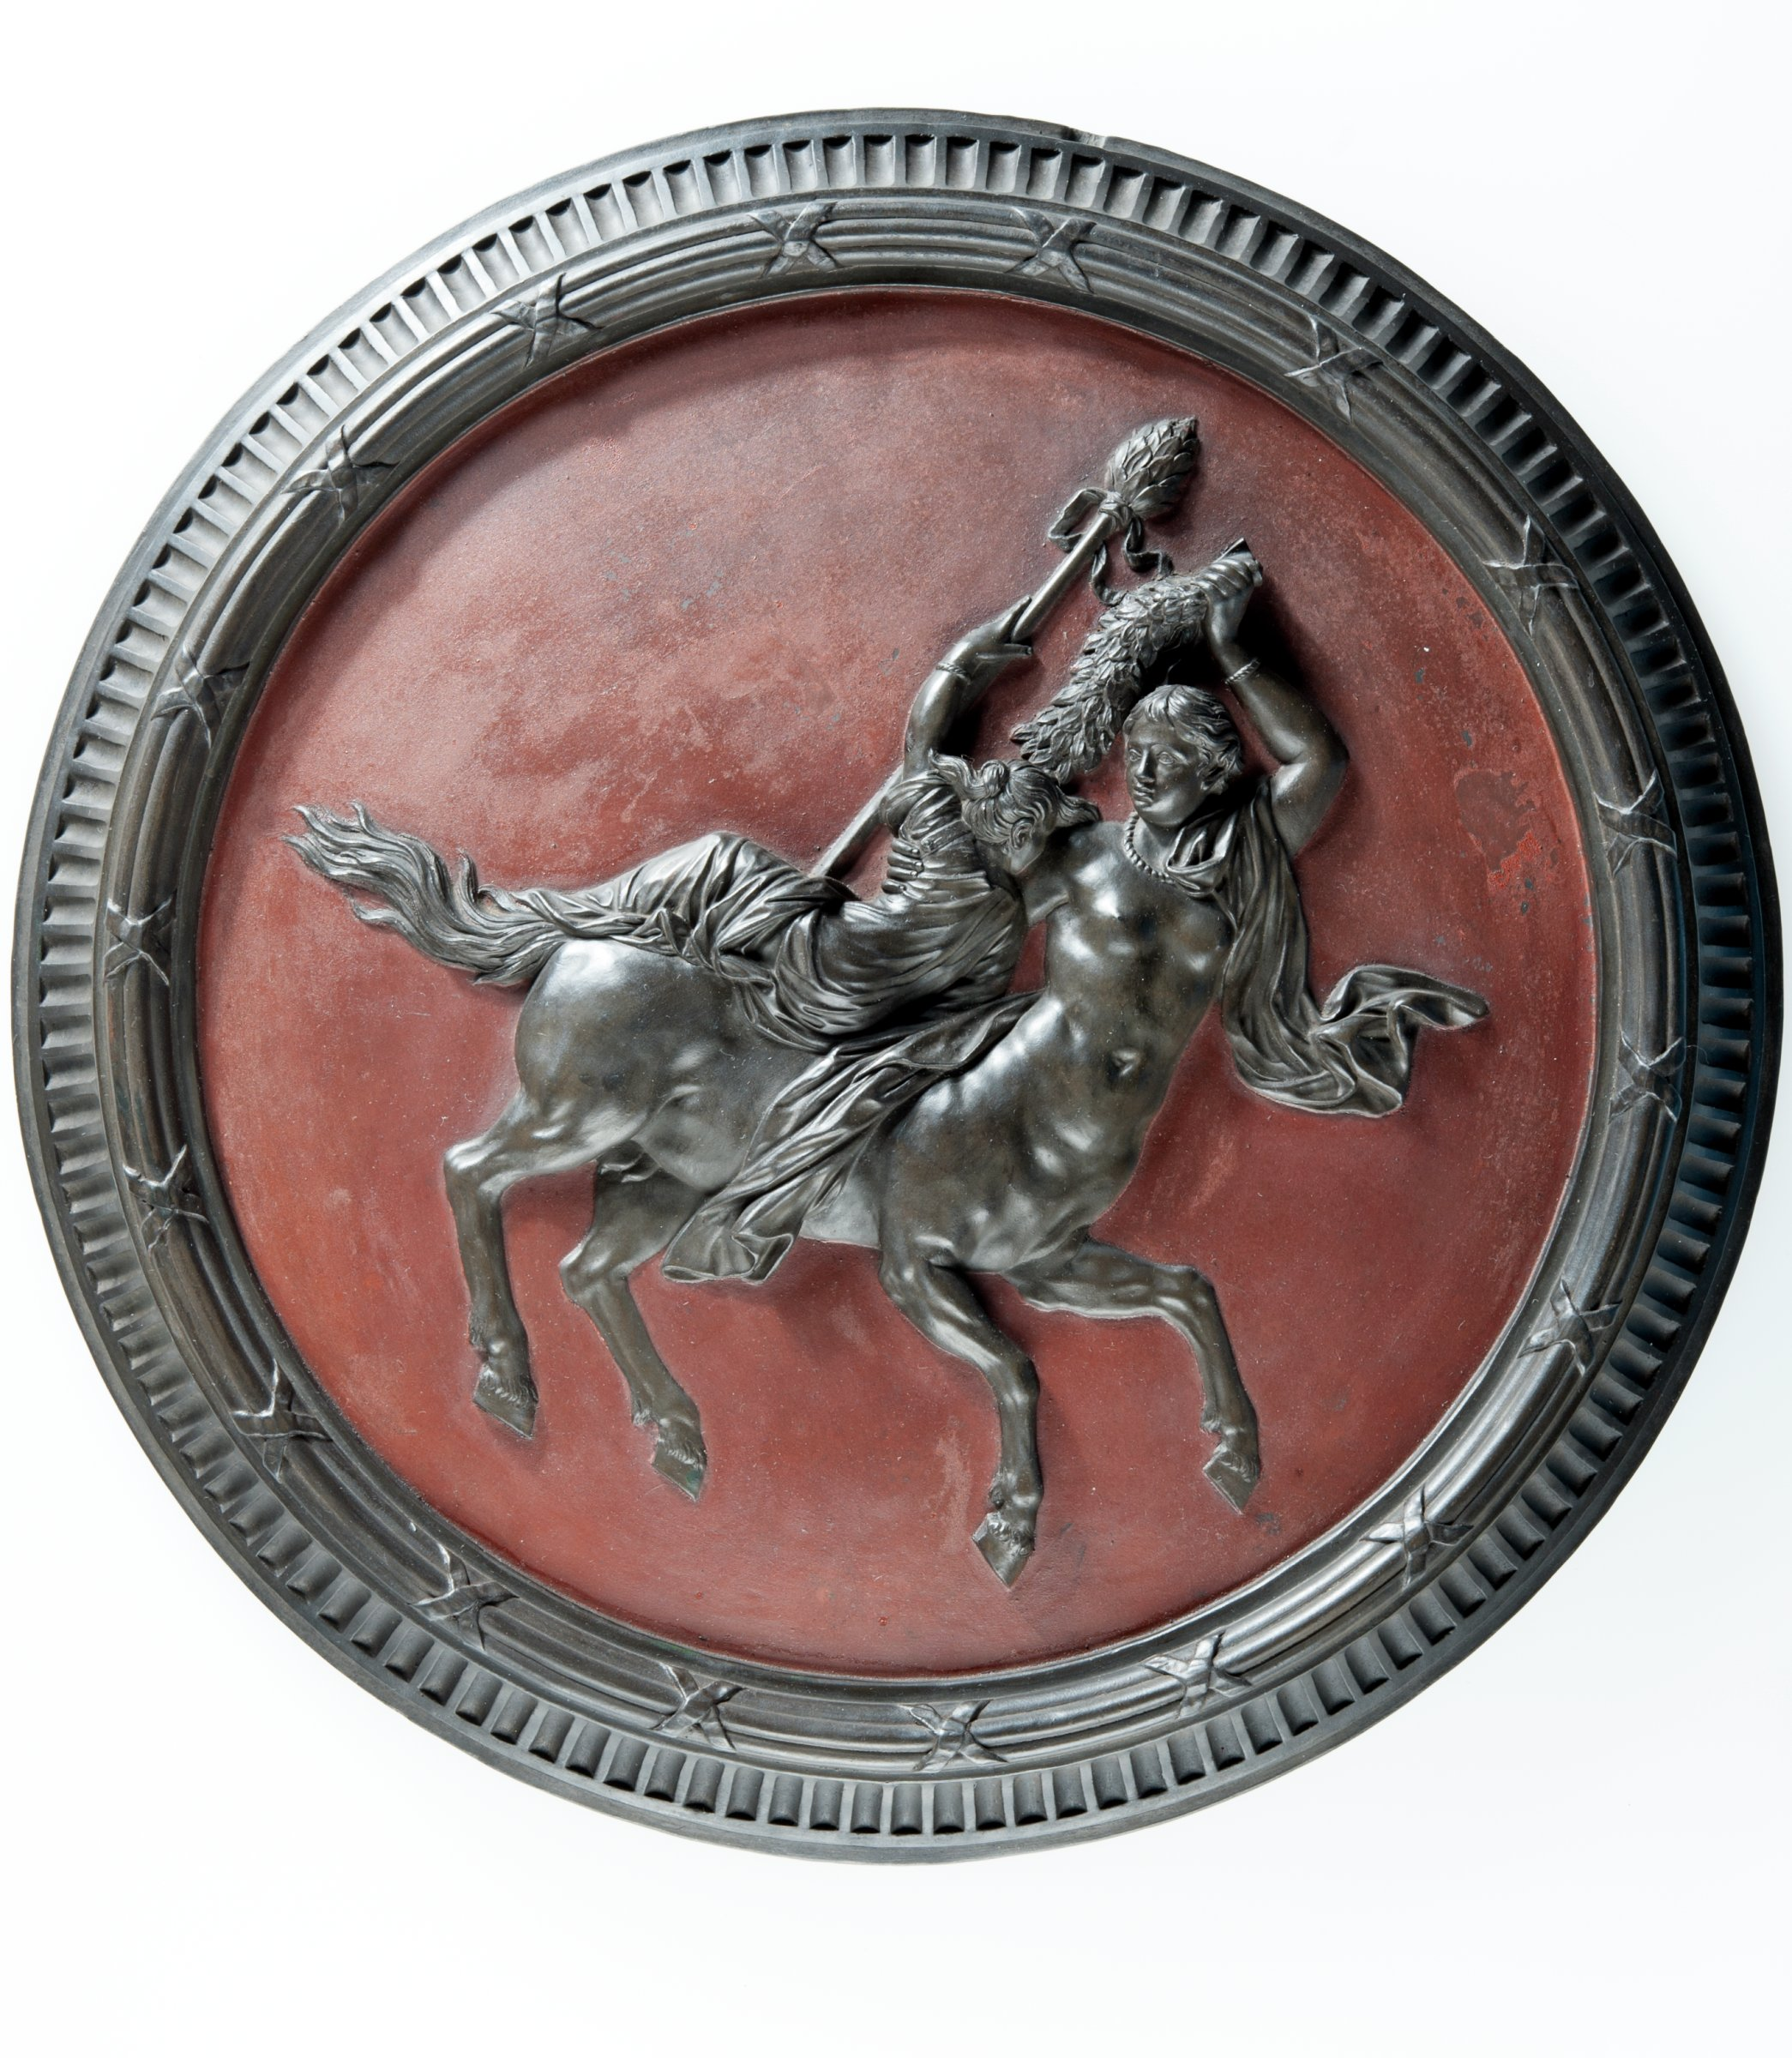 Large round, self-framed plaque of black basalt with an image of a centaur and a nymph, or maenad, against a red encaustic ground.